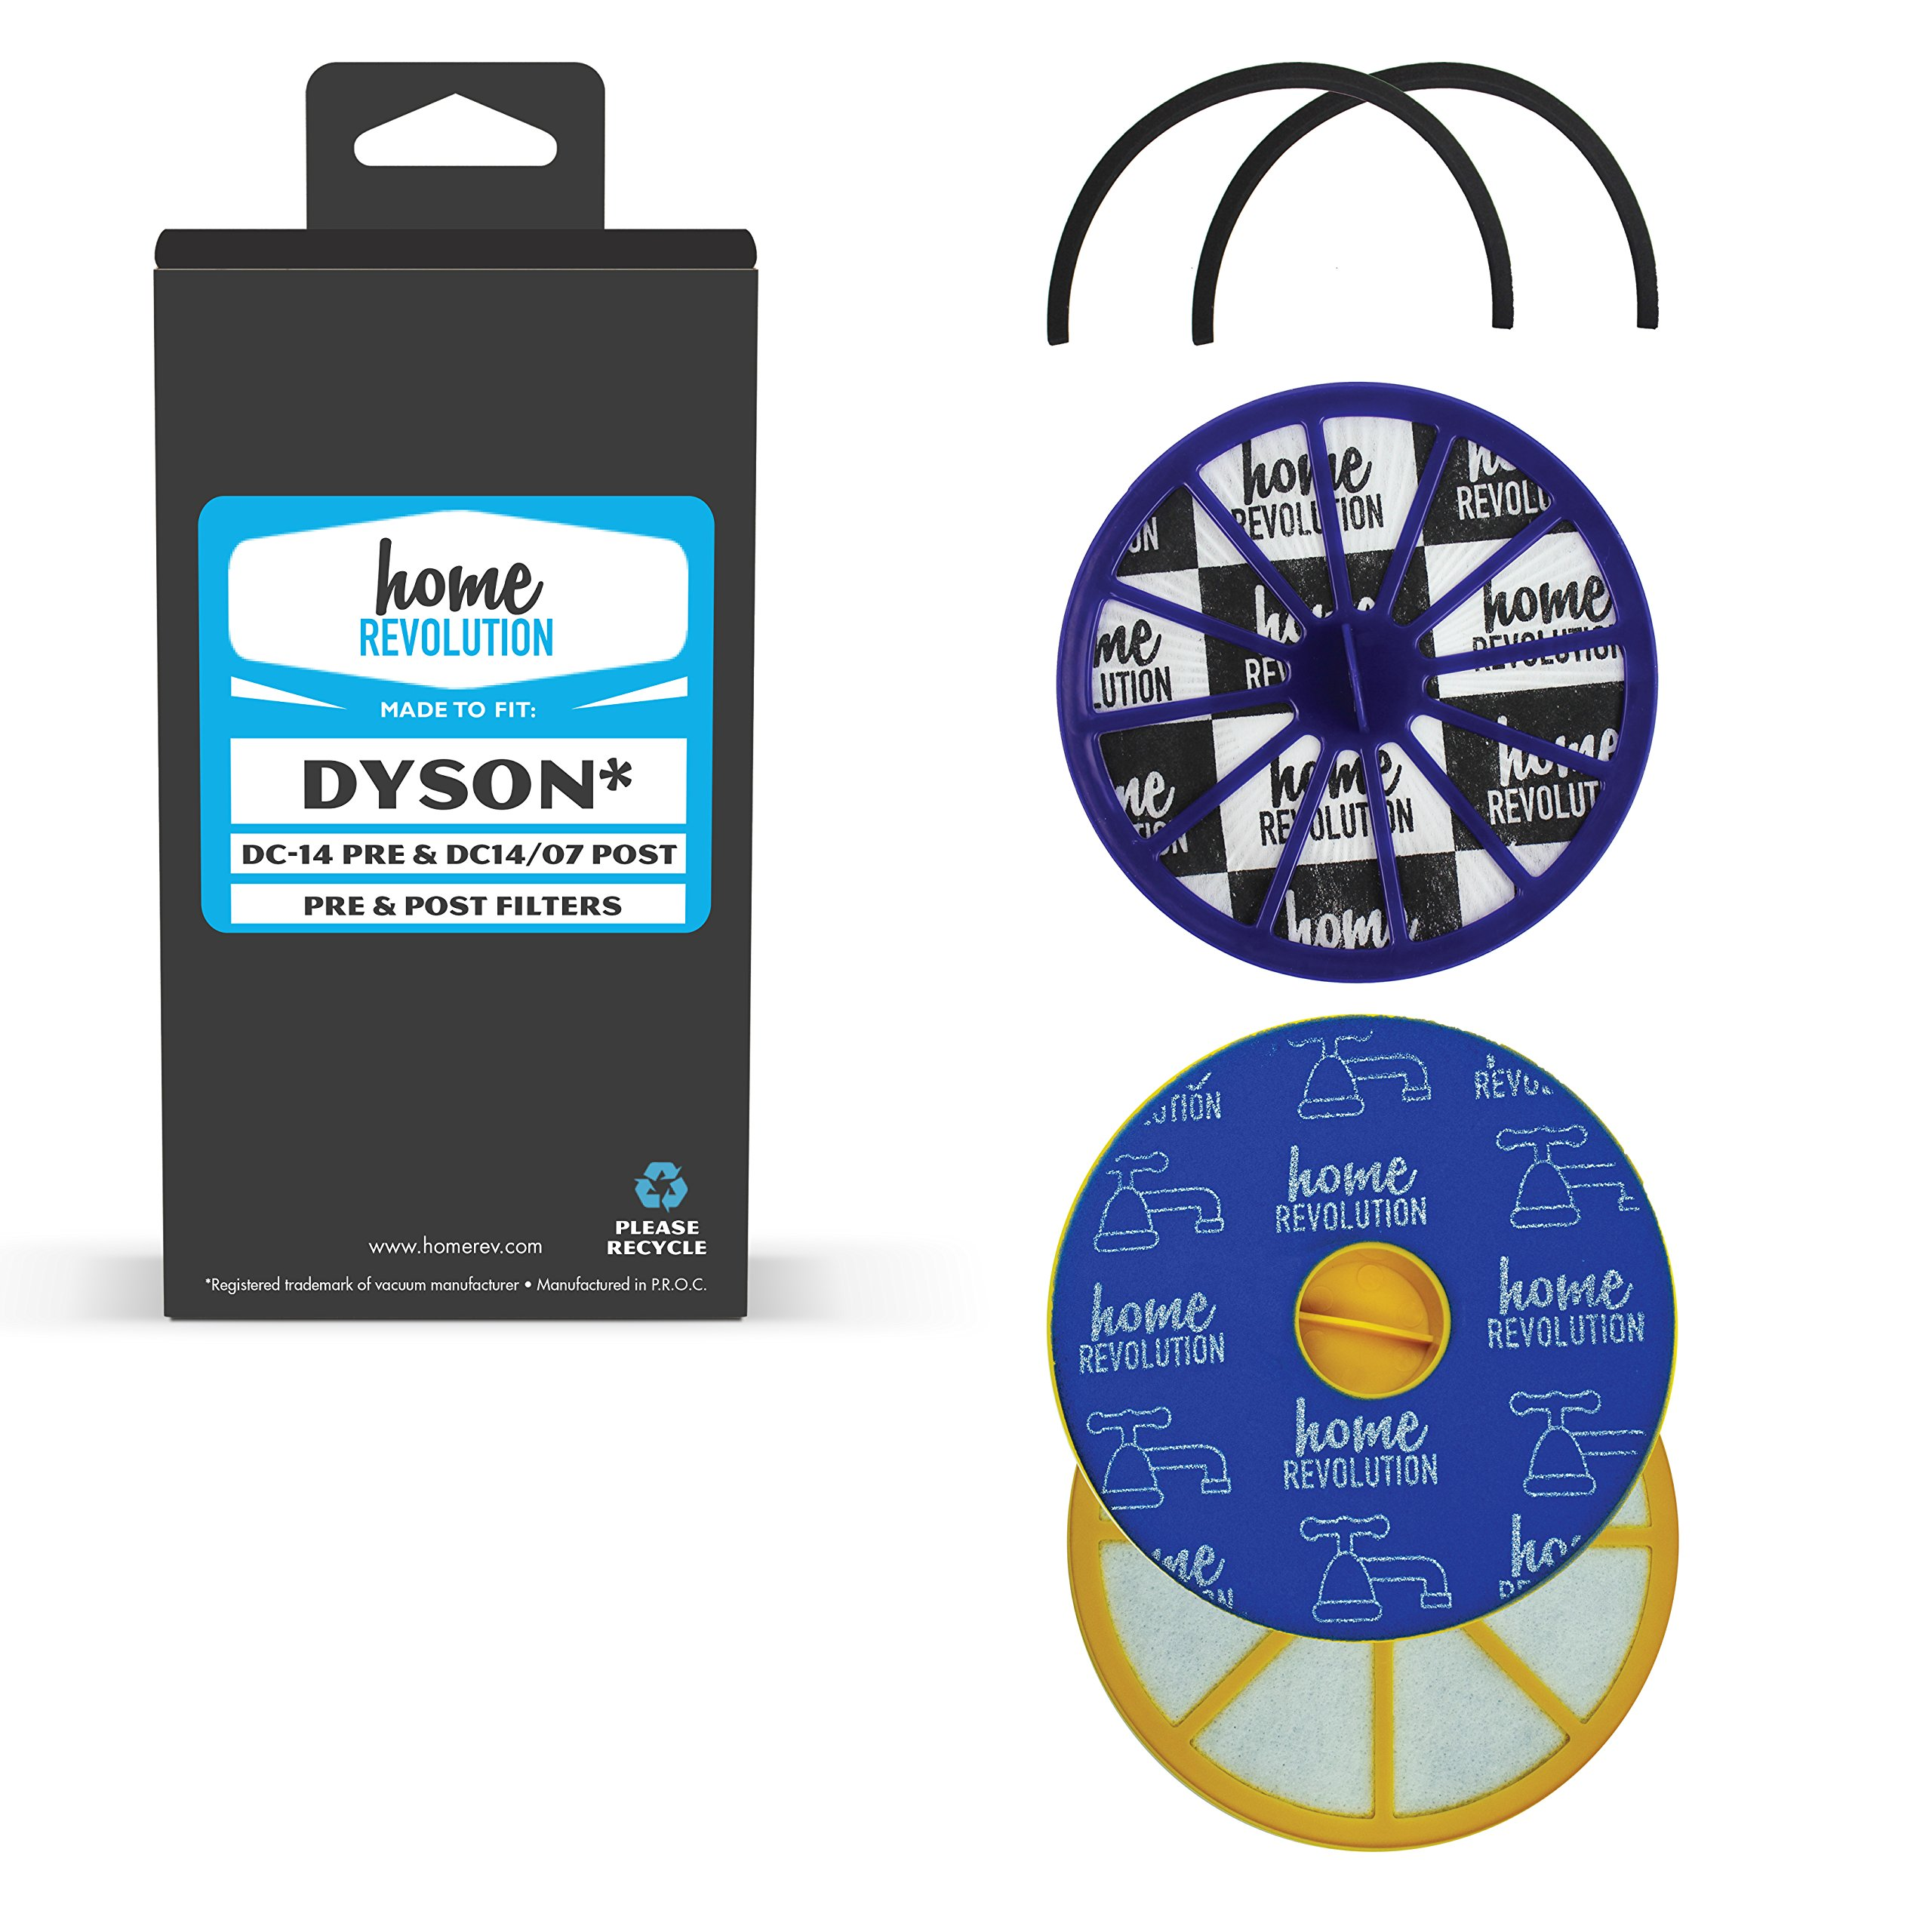 Home Revolution Pre & Post Motor HEPA Filters, Fits Dyson DC14 Animal Cyclone & All Floors Upright Bagless Vacuum Cleaner Models